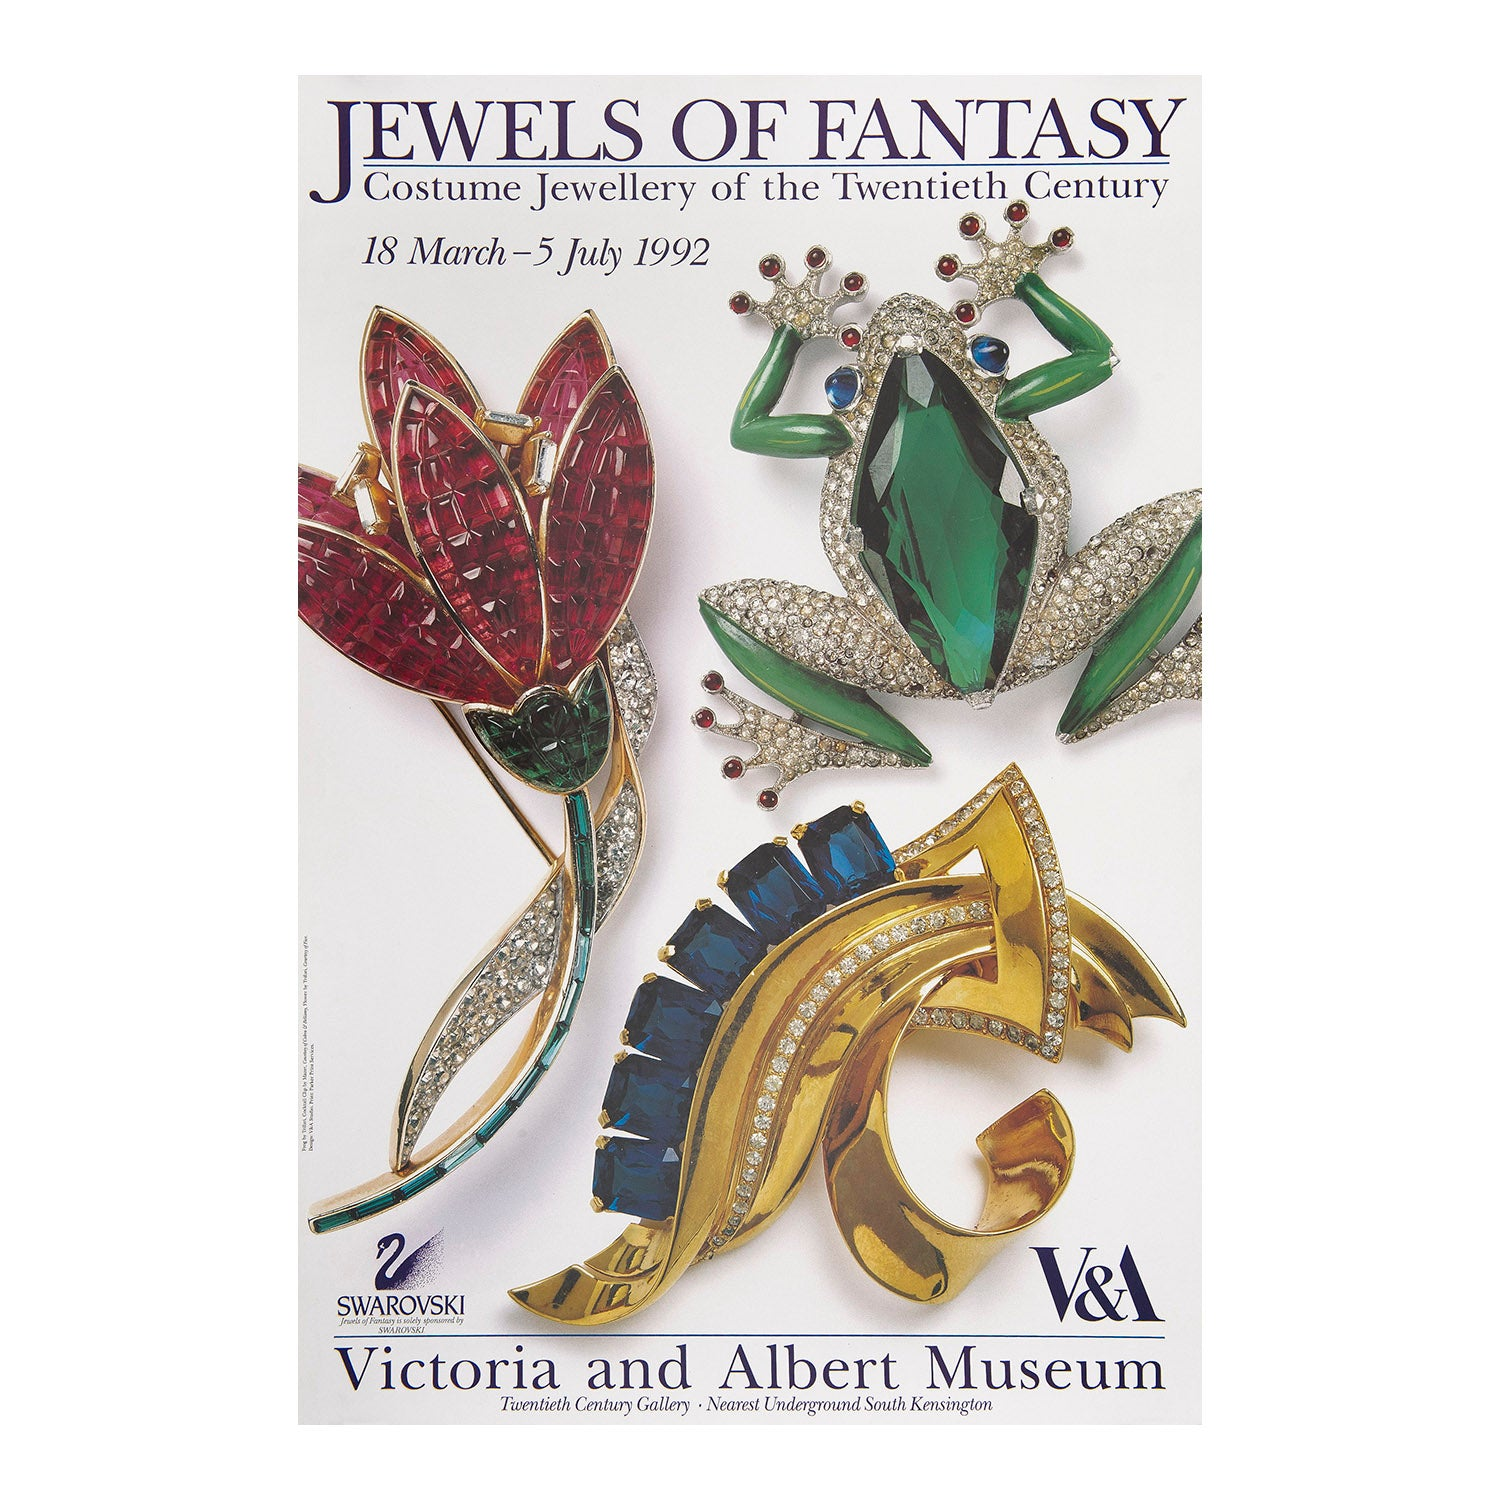 Jewels of Fantasy. Costume jewellery of the Twentieth Century